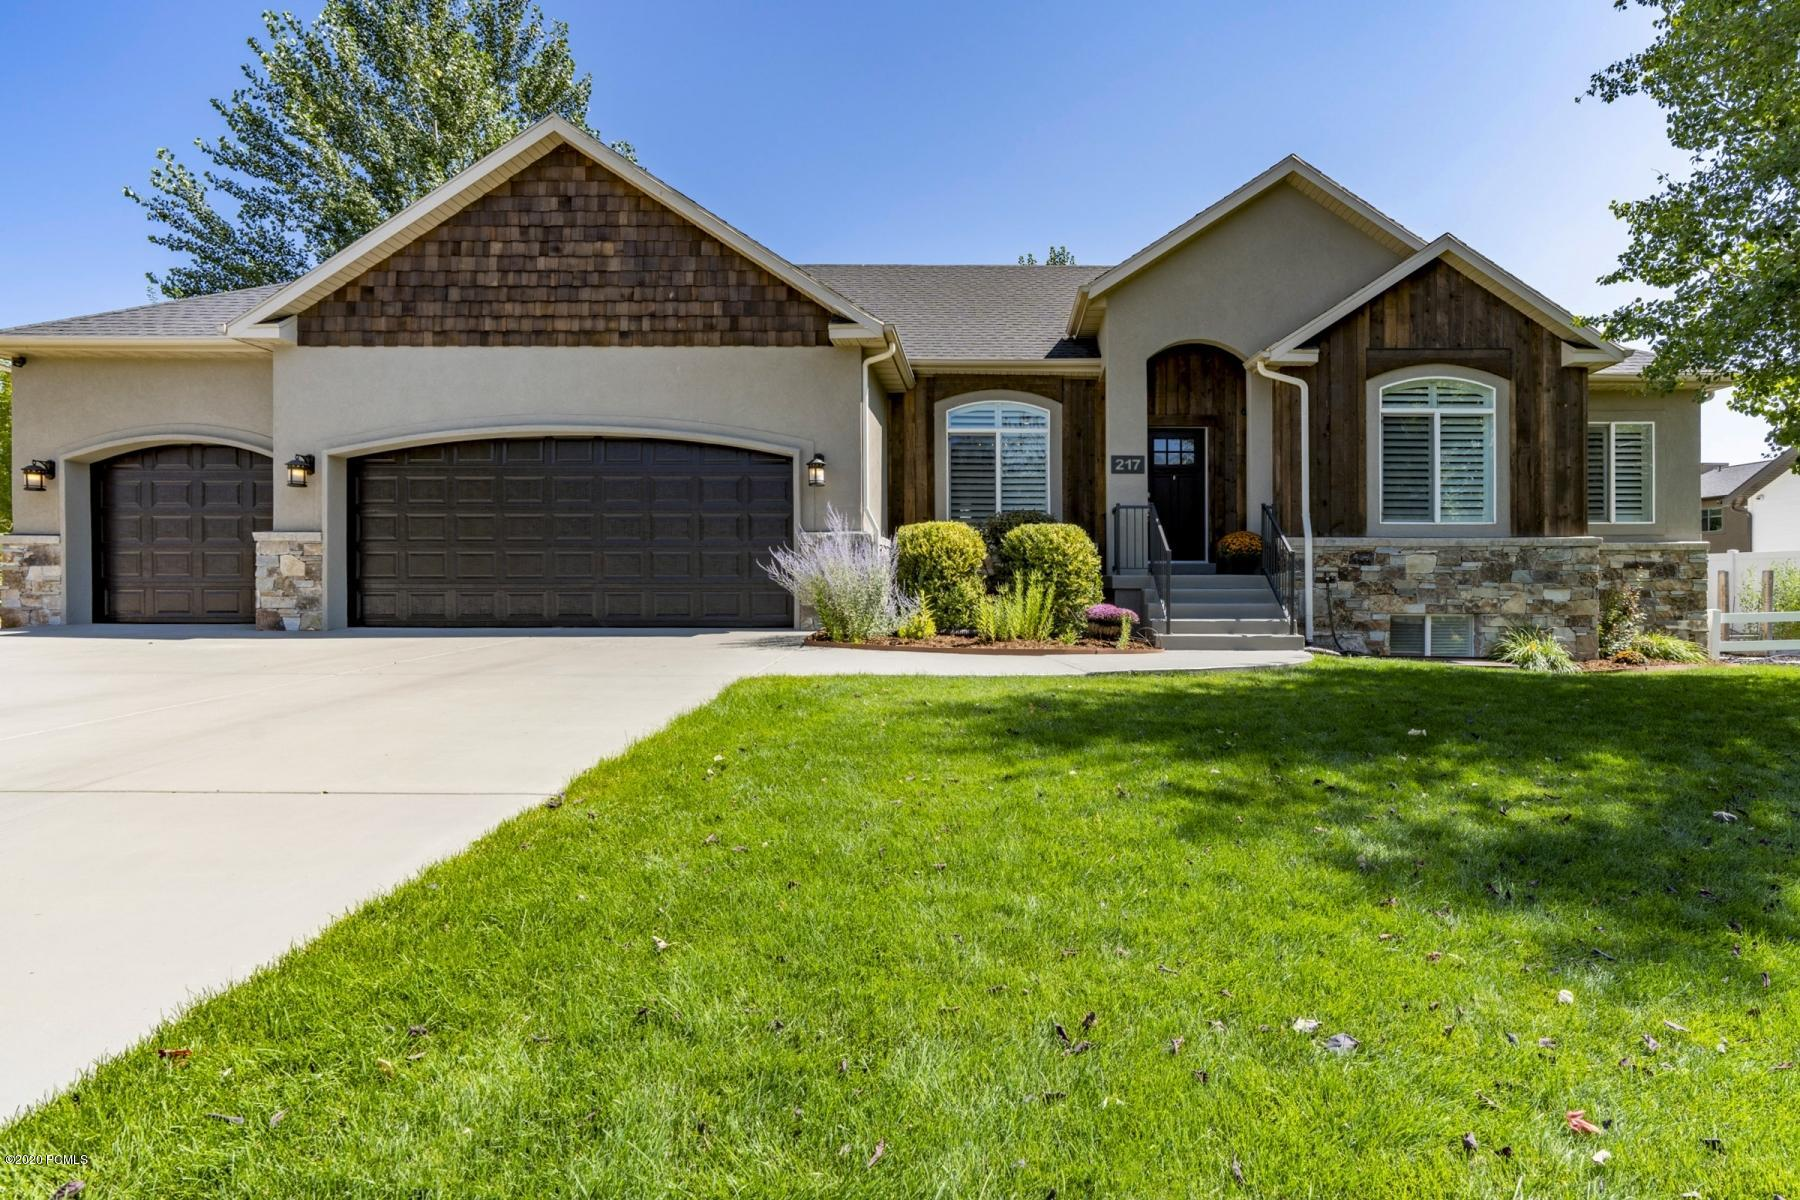 217 550 E, Midway, Utah 84049, 4 Bedrooms Bedrooms, ,3 BathroomsBathrooms,Single Family,For Sale,550 E,12003285